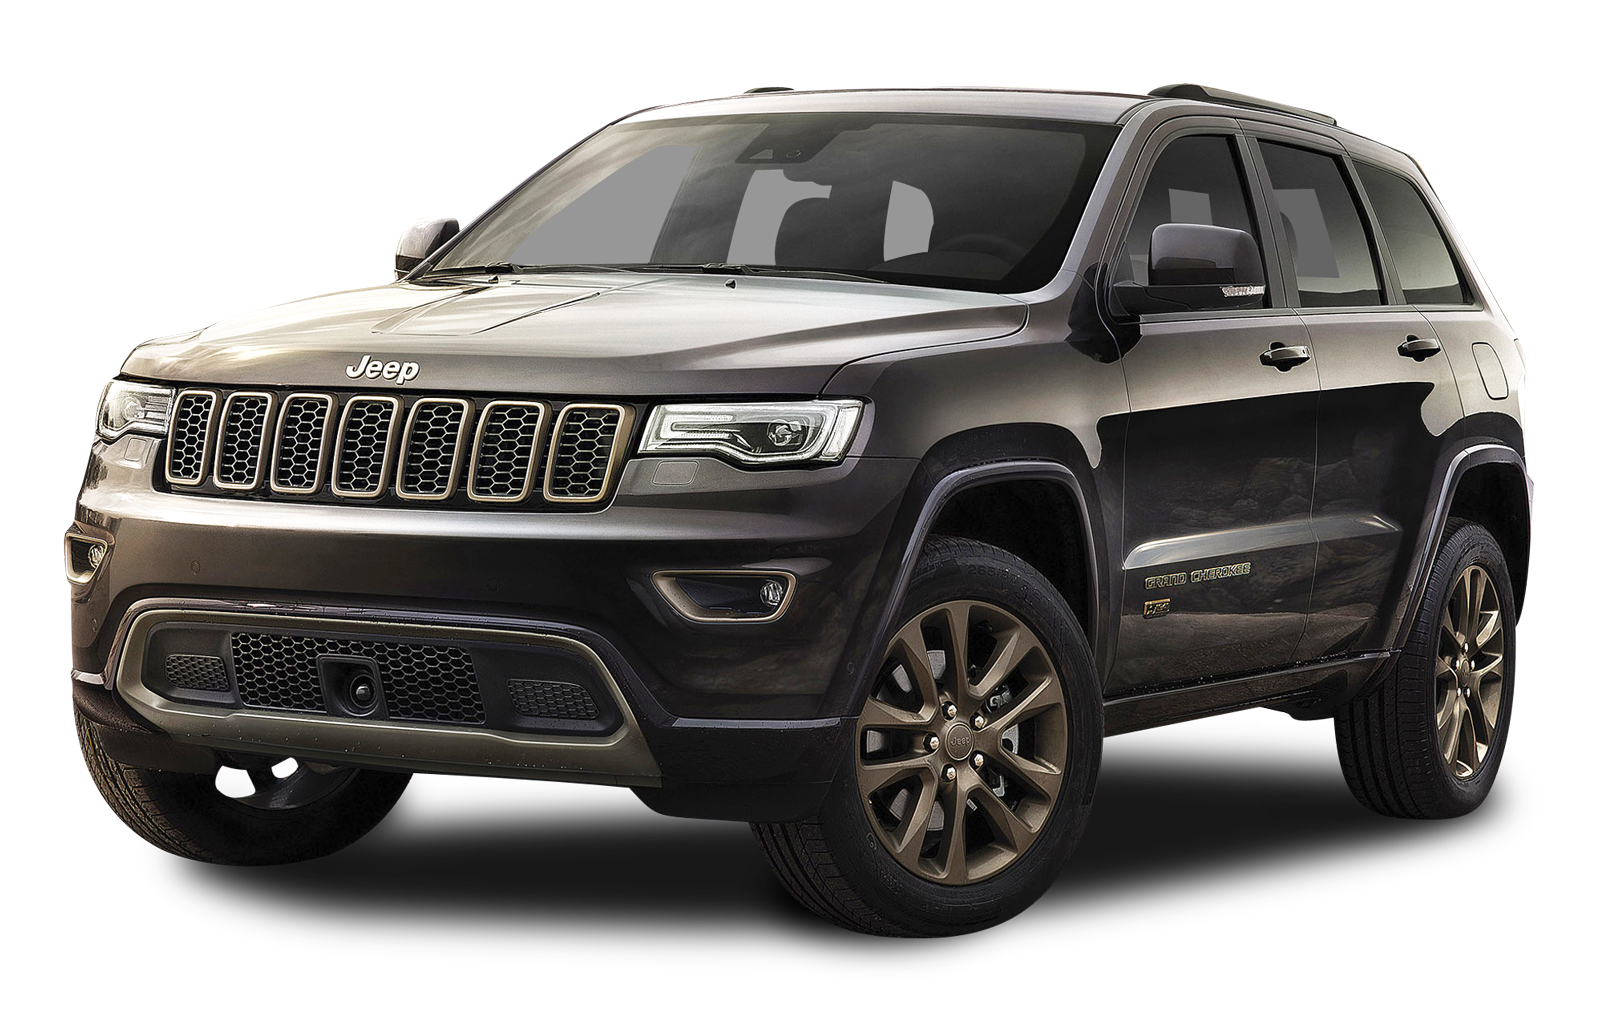 Jeep cherokee vector png. Clipart image group grand